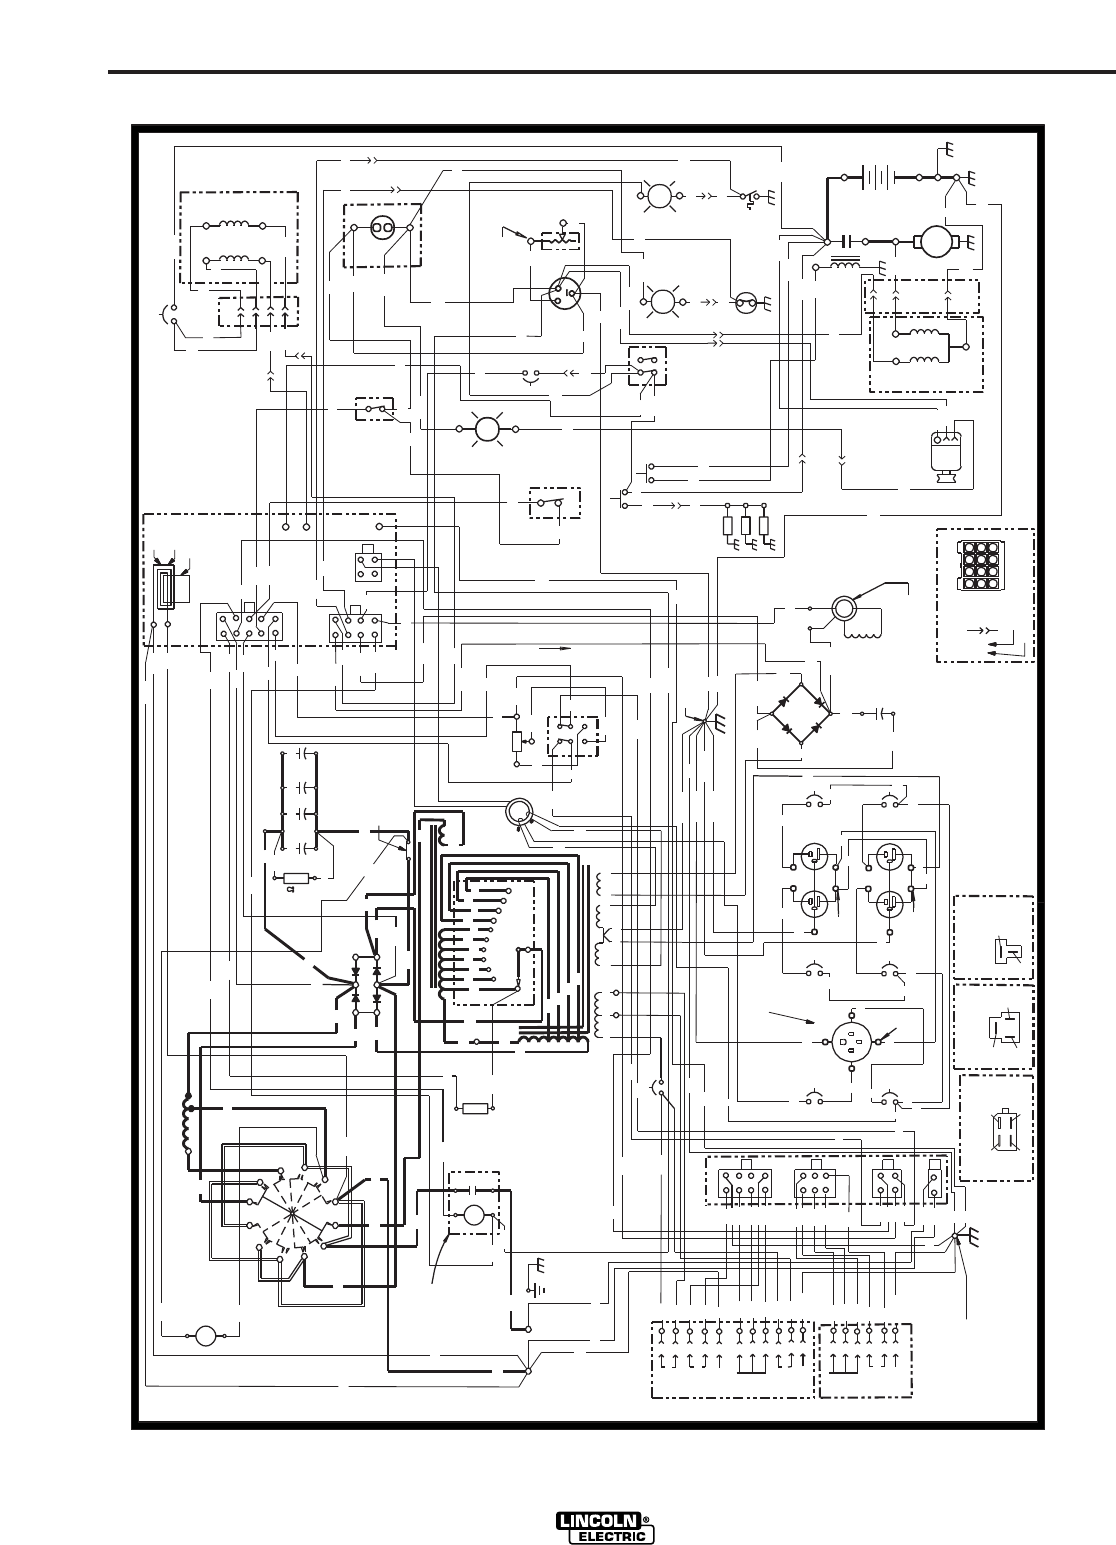 page 47 of lincoln electric welder 300 d user guide f 7 wiring diagram